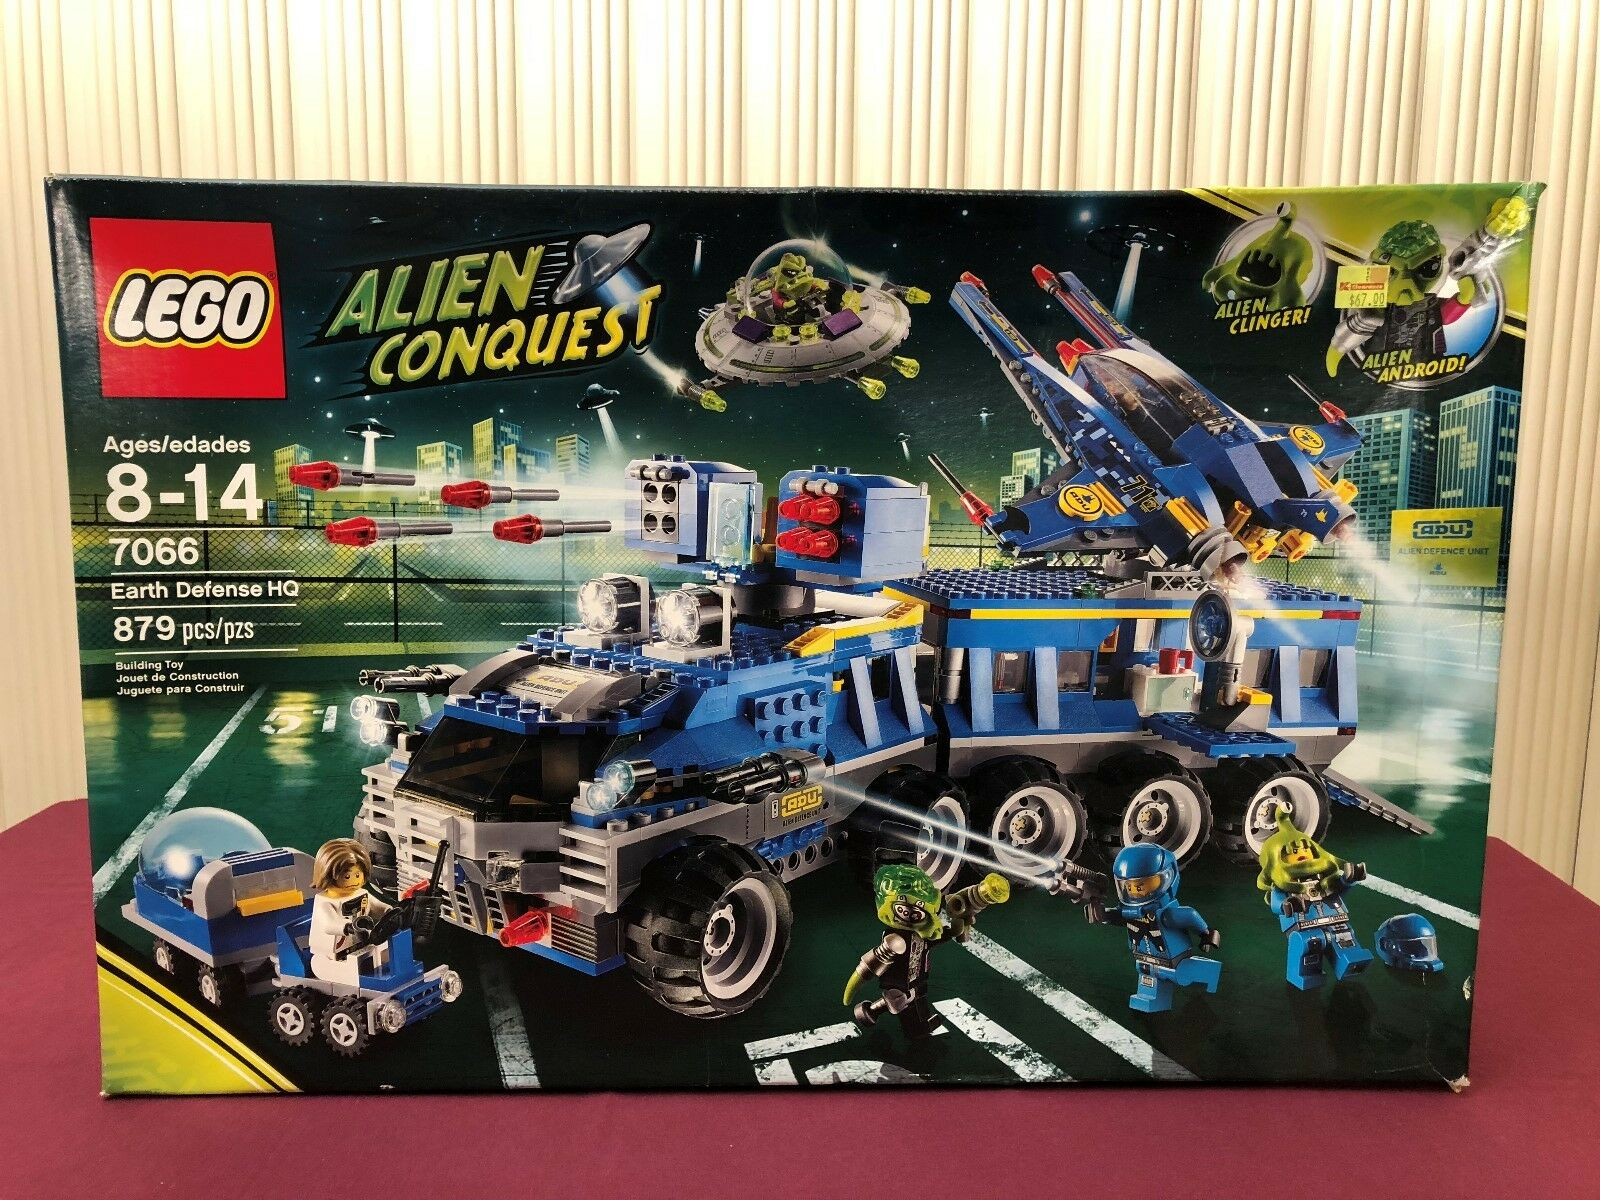 LEGO 7066 Alien Conquest Earth Defense HQ Brand NEW Sealed 879 Pieces Spaceship